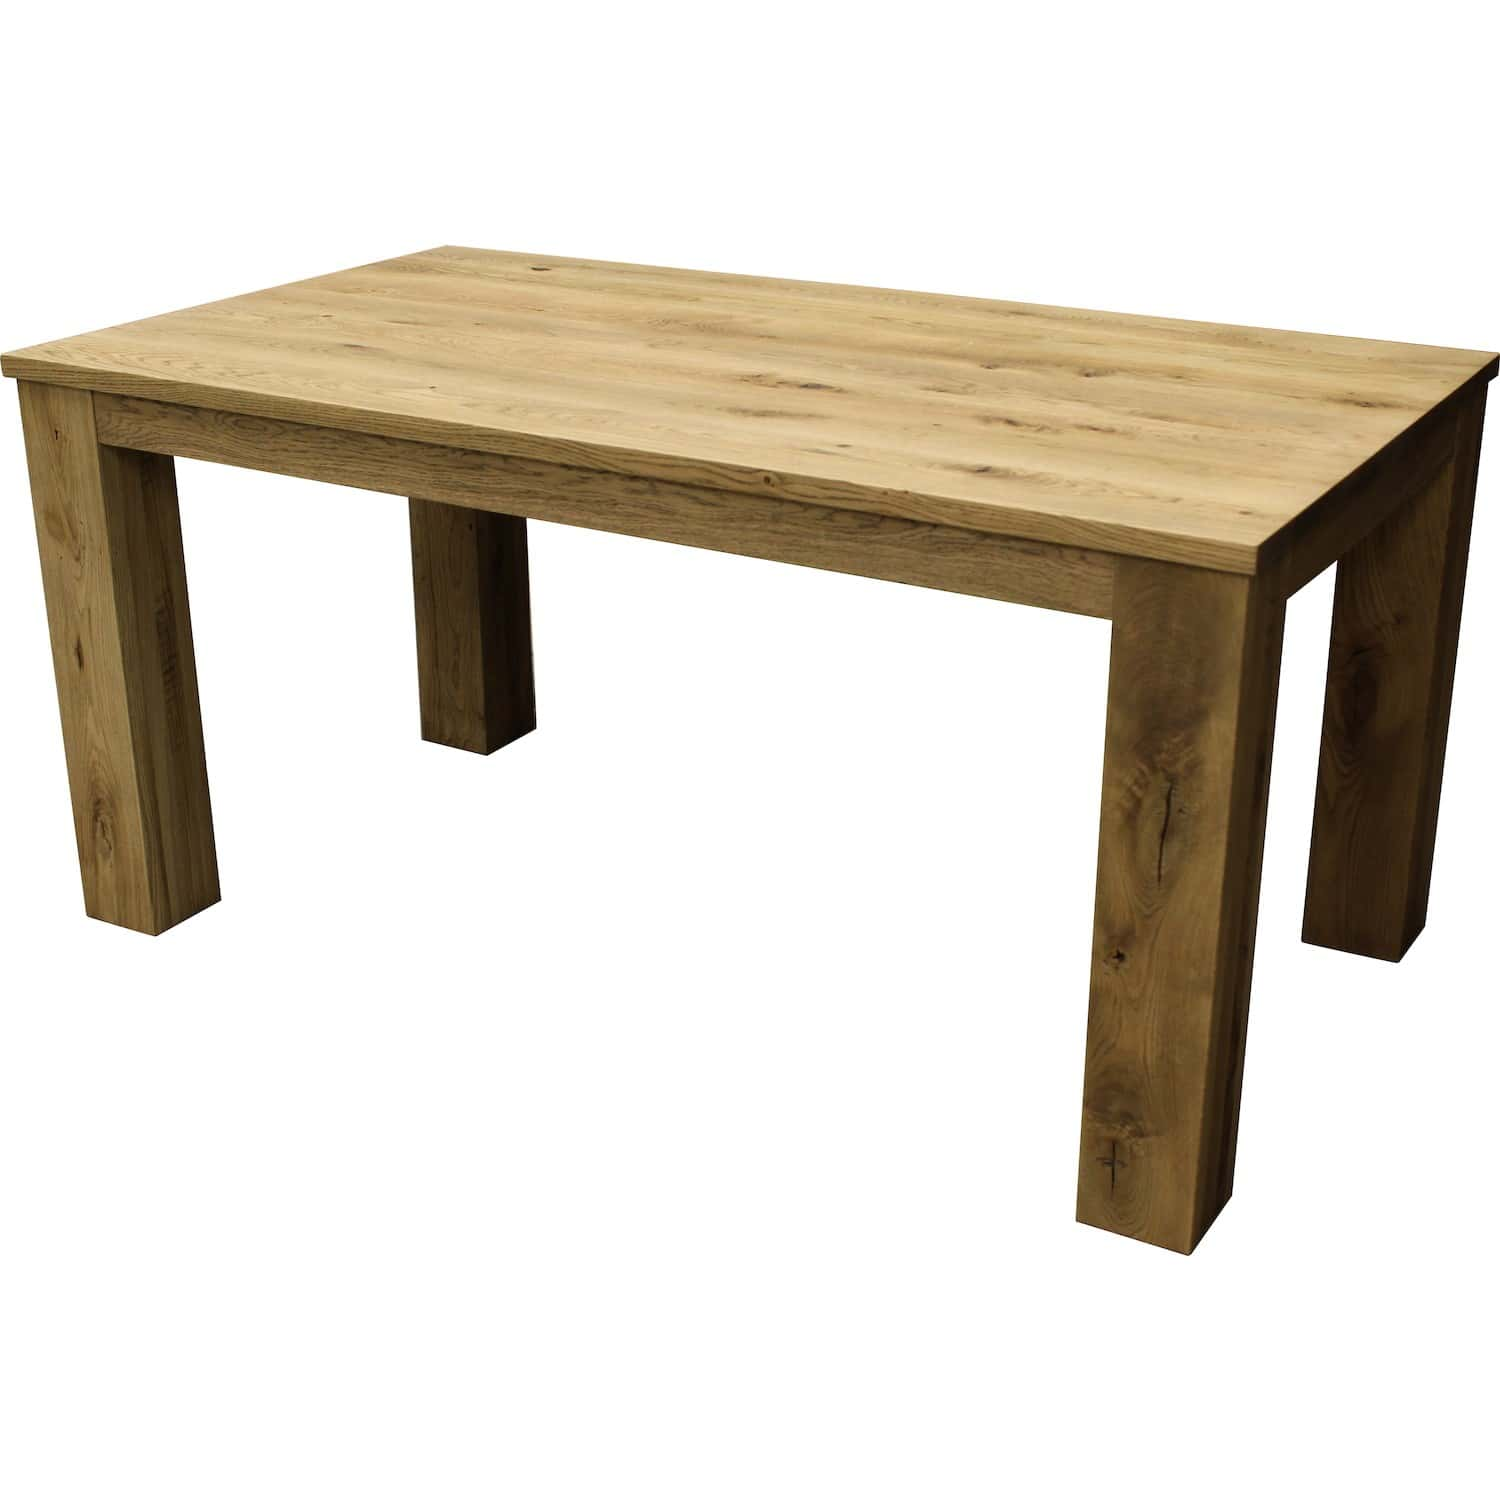 Table rectangulaire en ch ne massif avec allonge int gr e jbf Table rectangulaire bois avec allonges